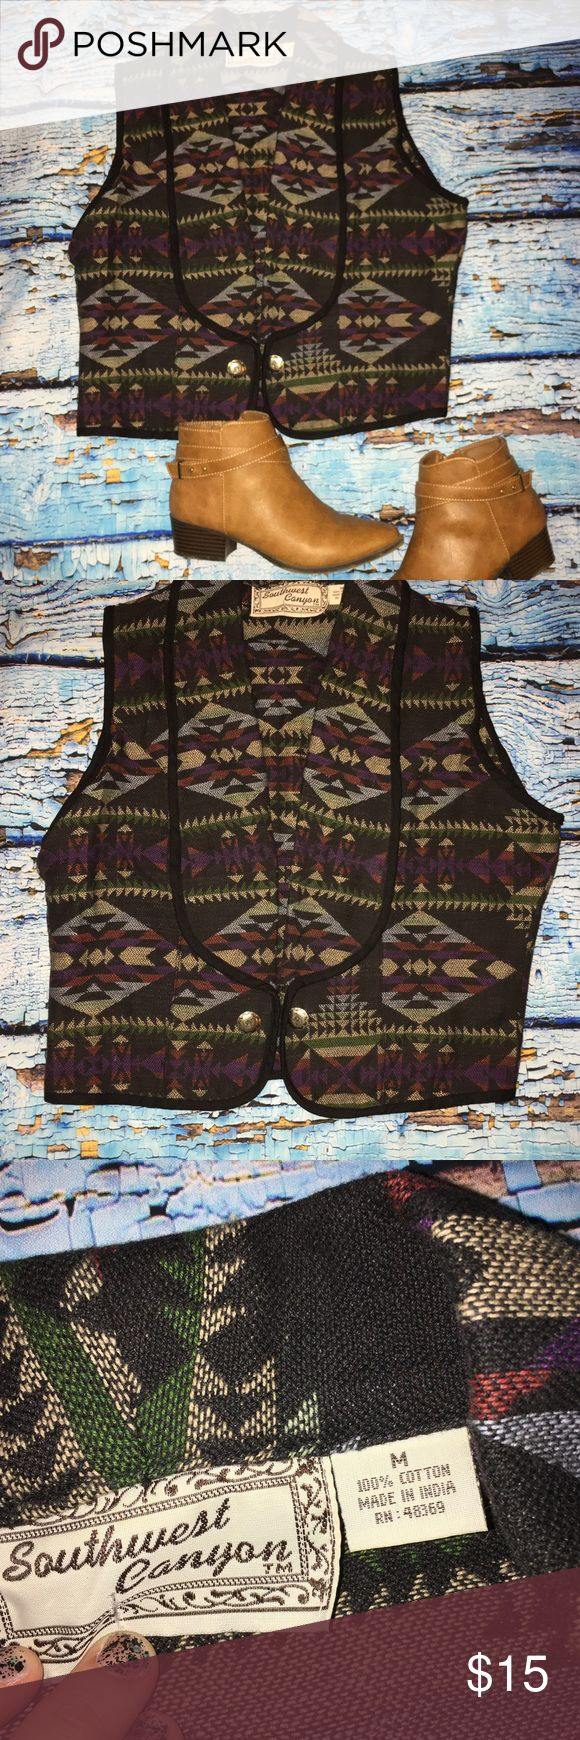 Aztec Vest Vintage M Aztec women's medium vest vintage m. Presented in gently used condition. Tops Sweatshirts & Hoodies